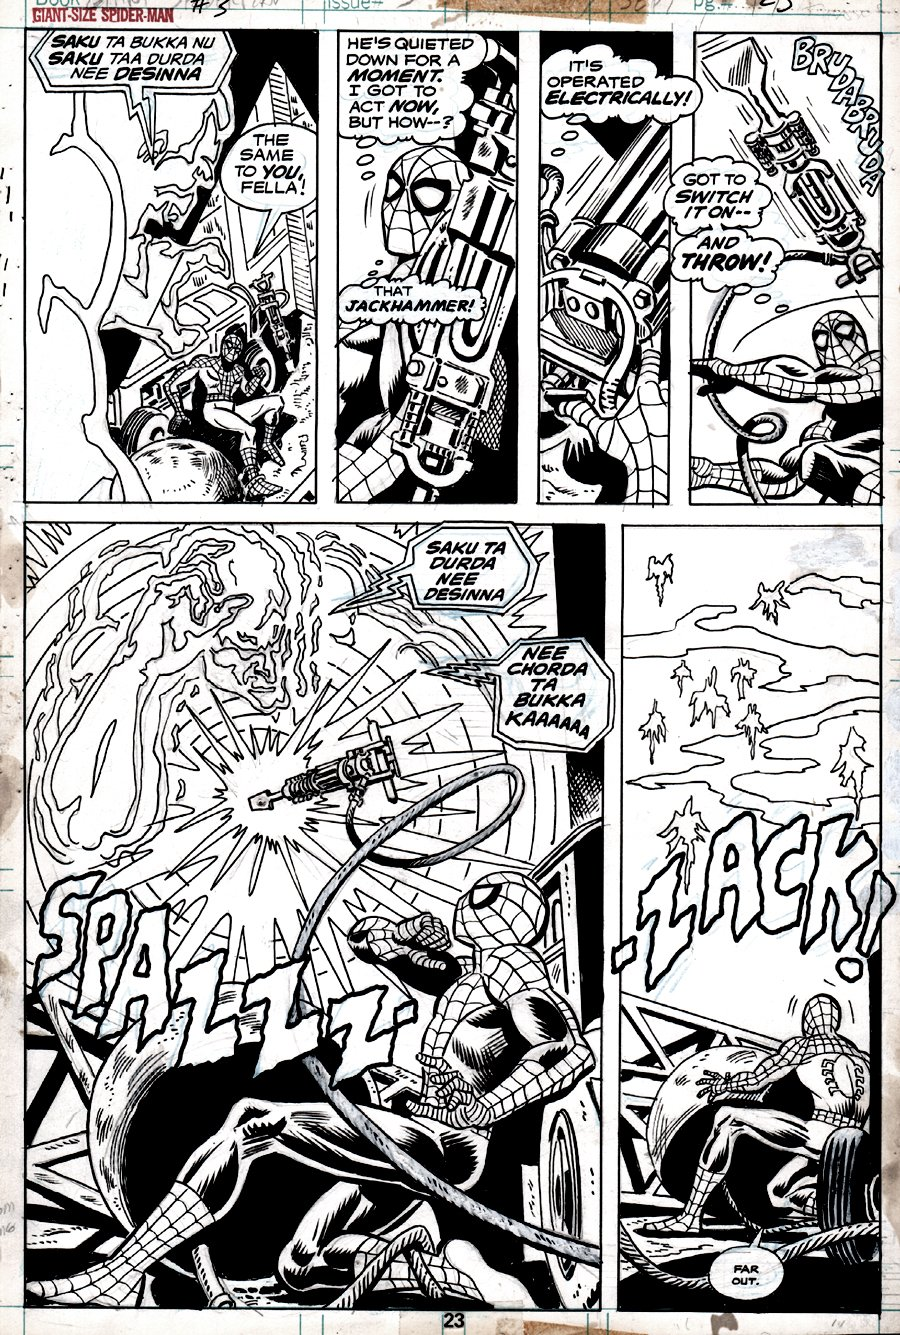 Giant-Size Spider-Man #3 p 23 (SPIDER-MAN IN ALL 6 PANELS!) 1974